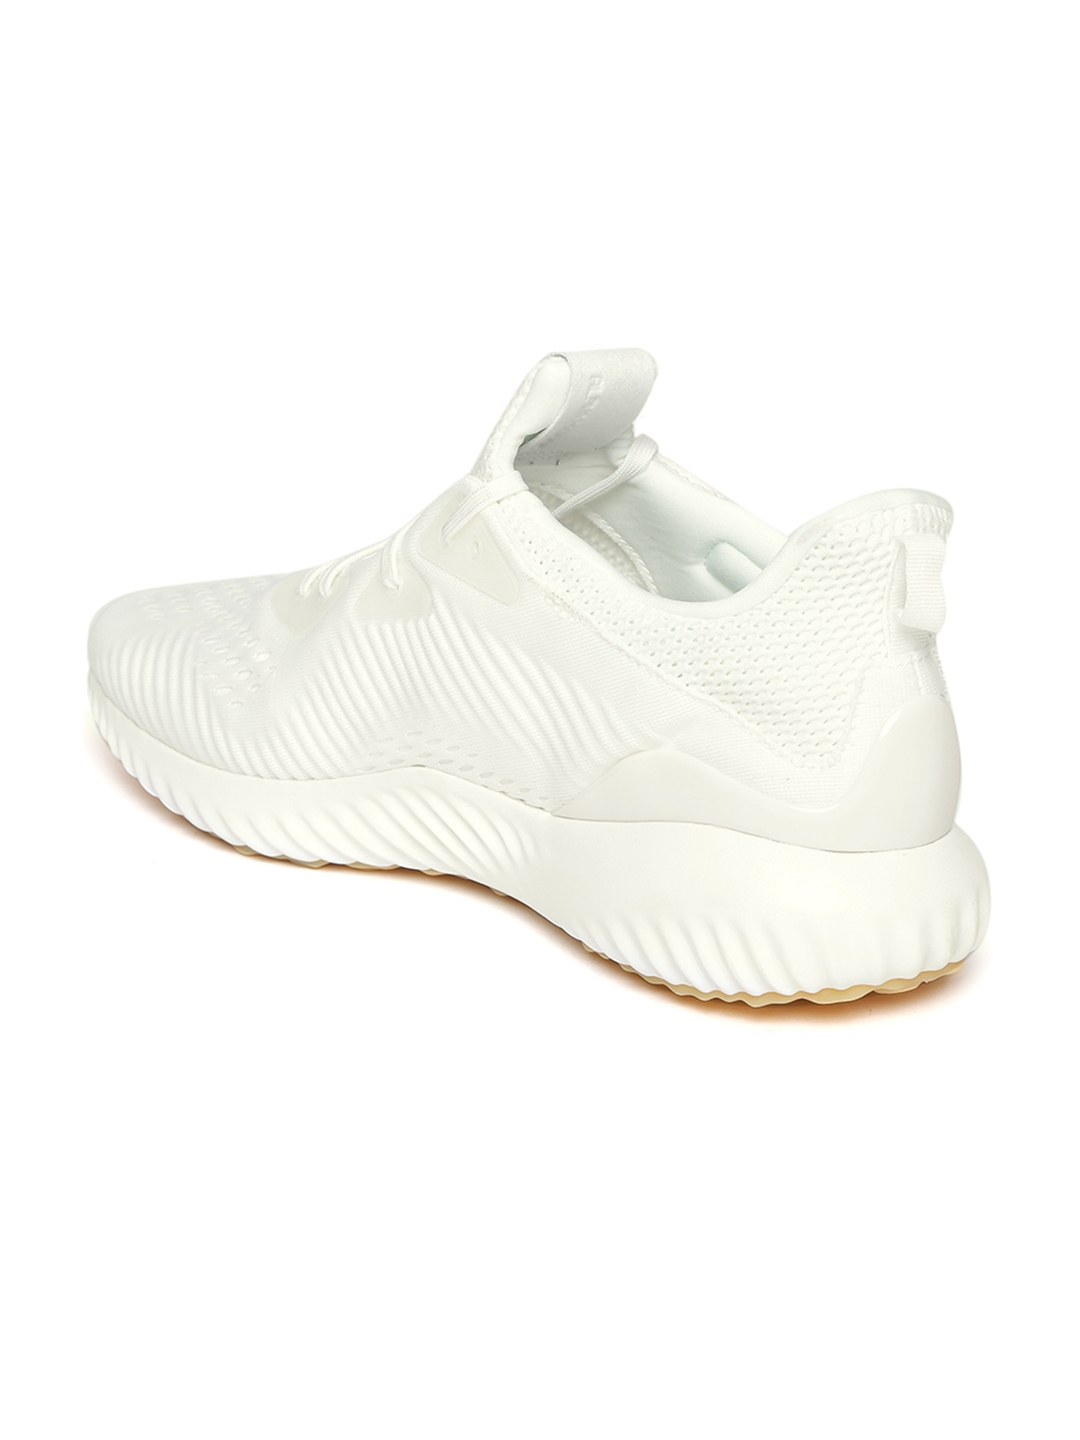 d682ddaaa Buy ADIDAS Men White Alphabounce EM Undye Running Shoes - Sports ...